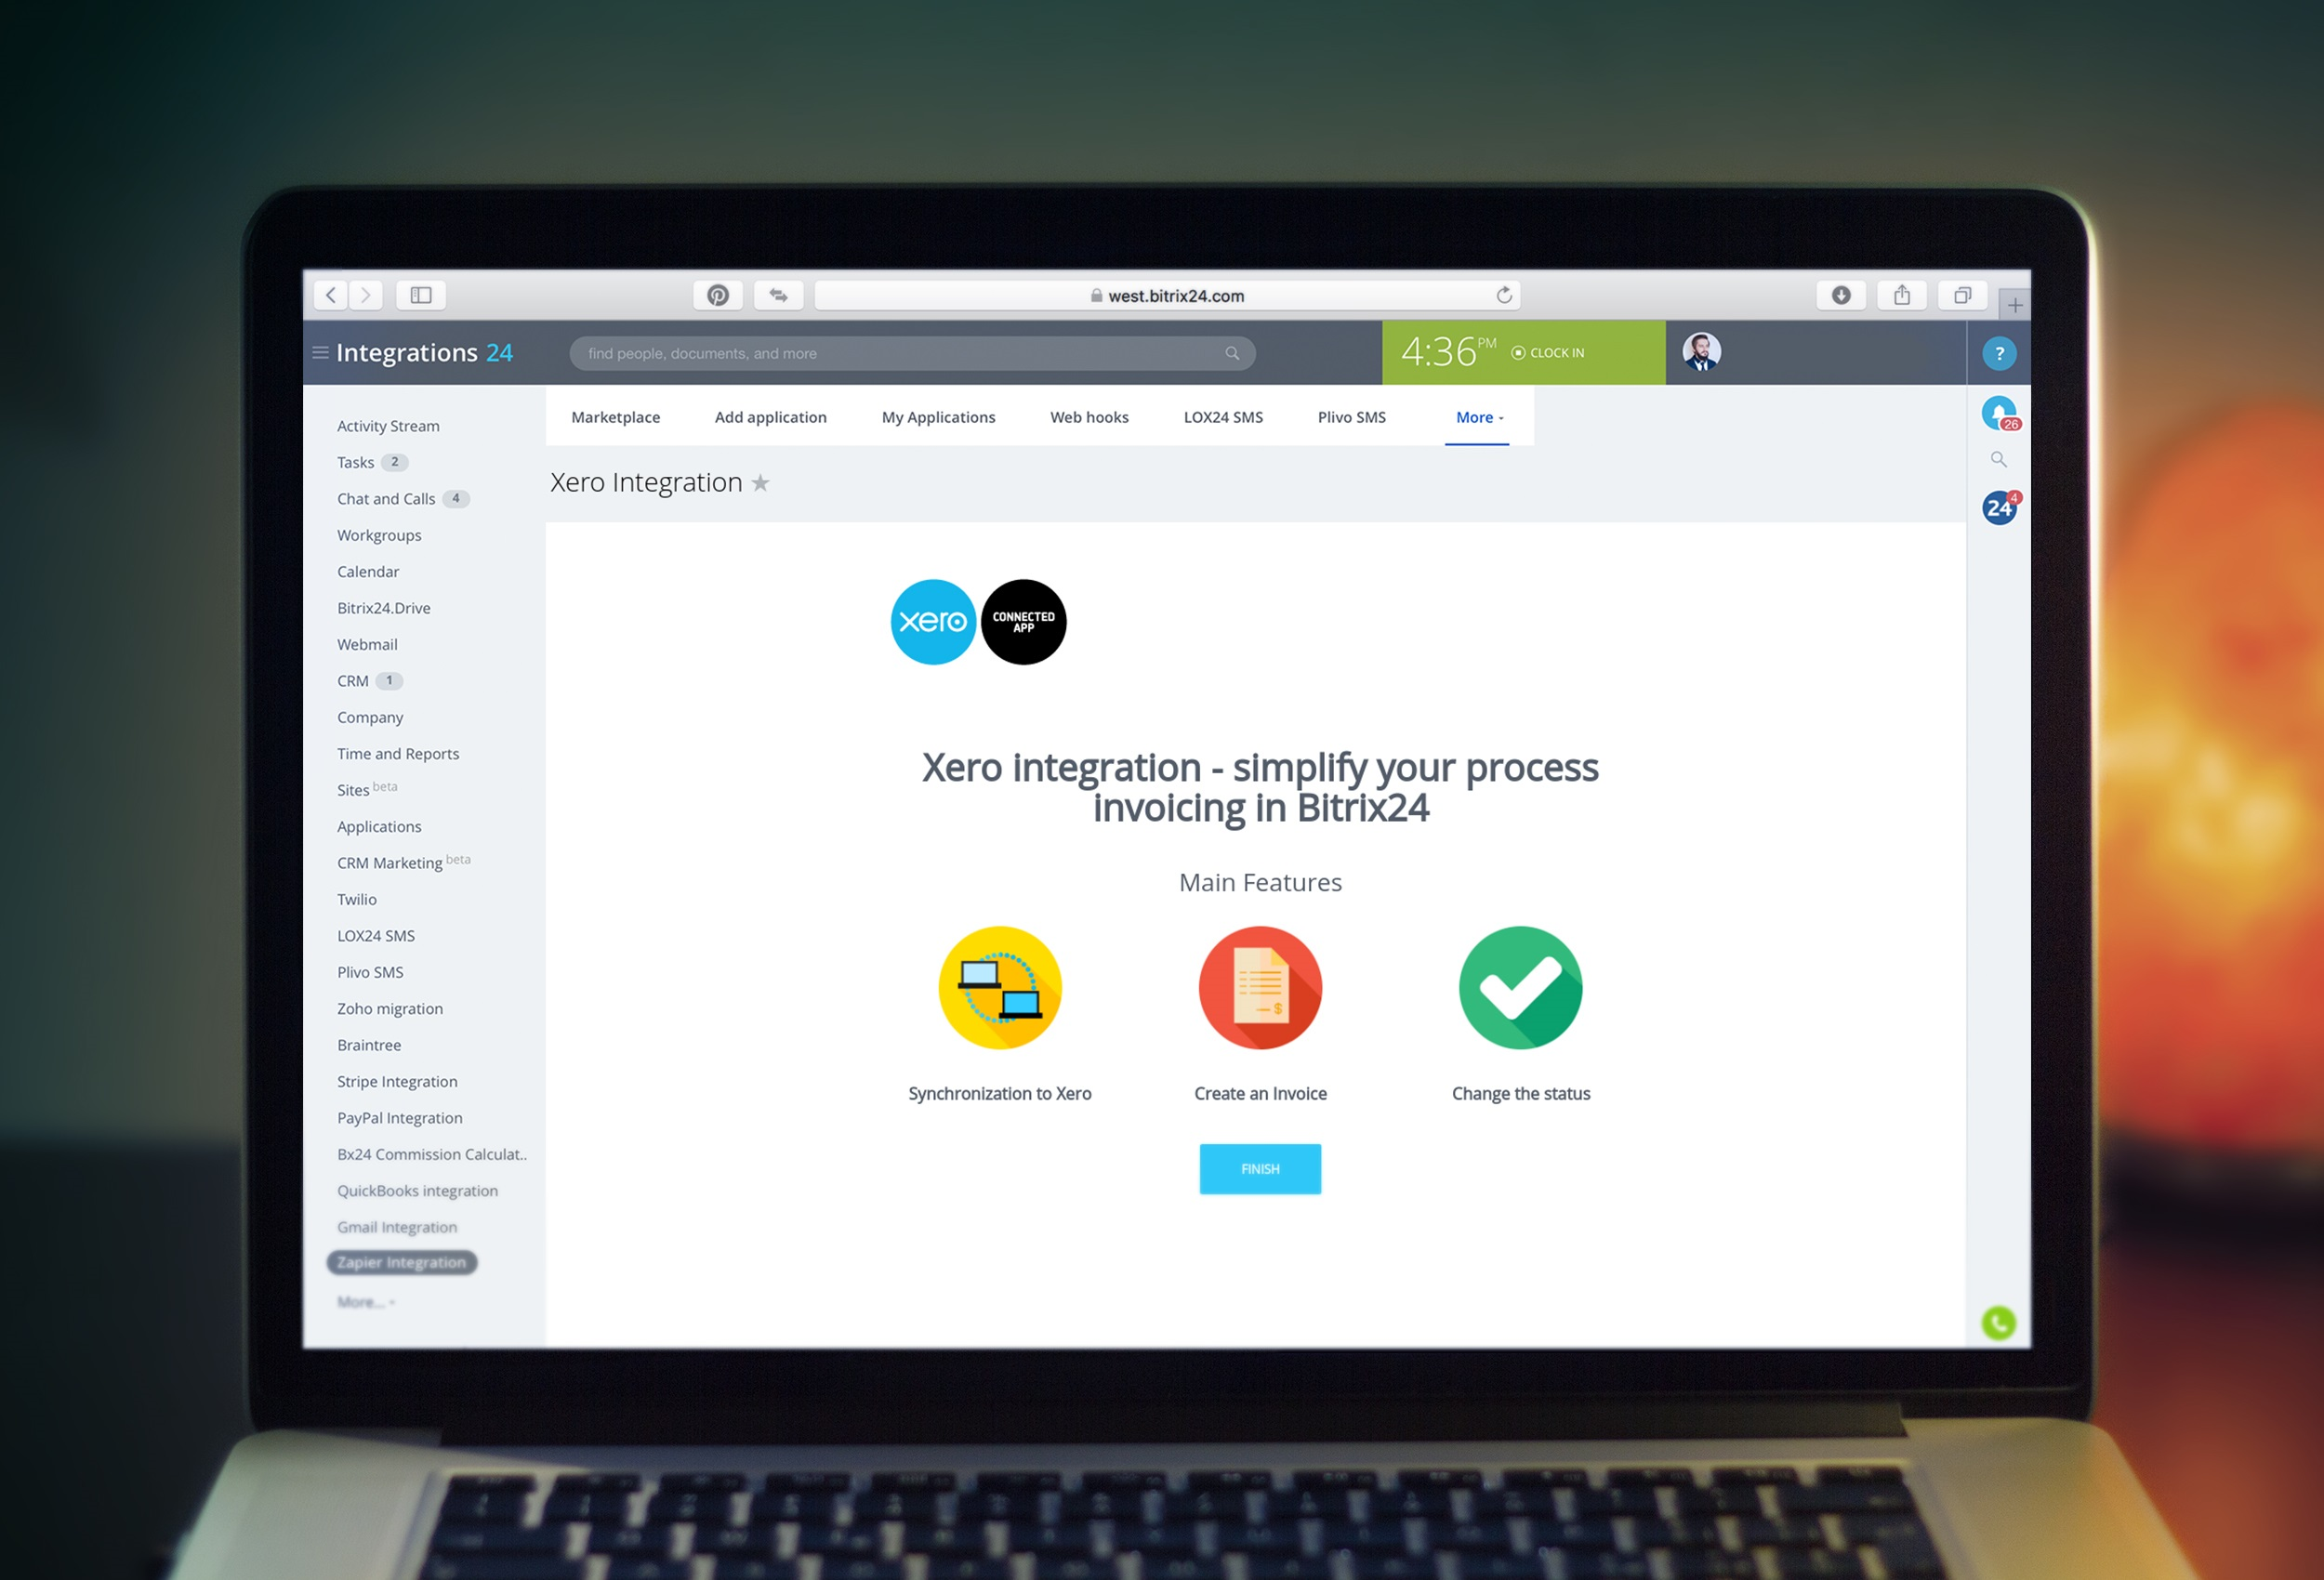 Free Xero integration for Bitrix24 is out